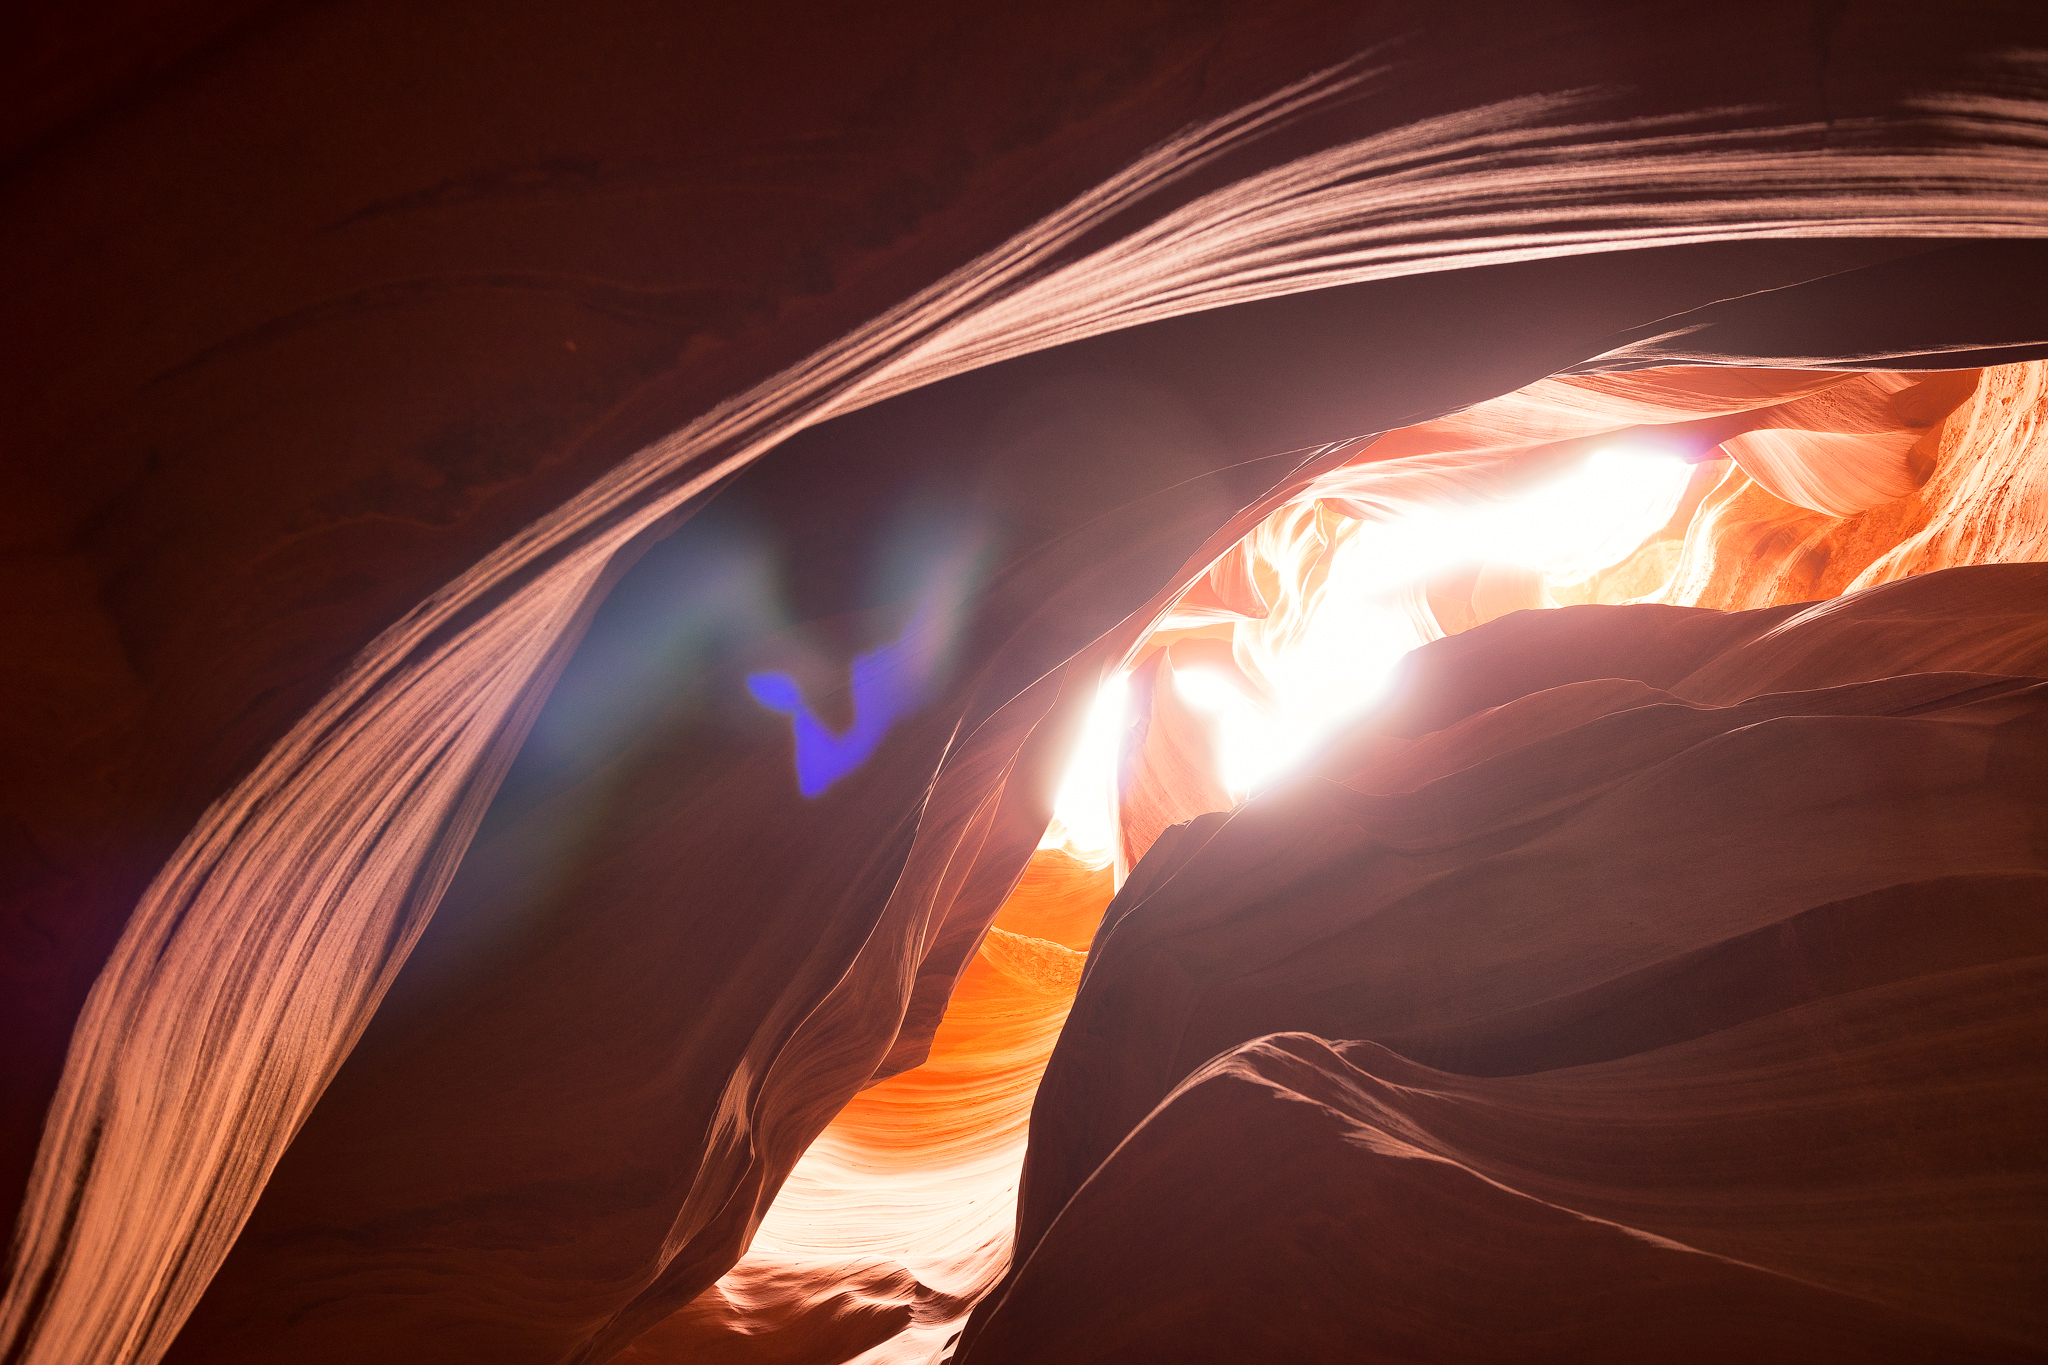 #8-Upper Antelope Canyon